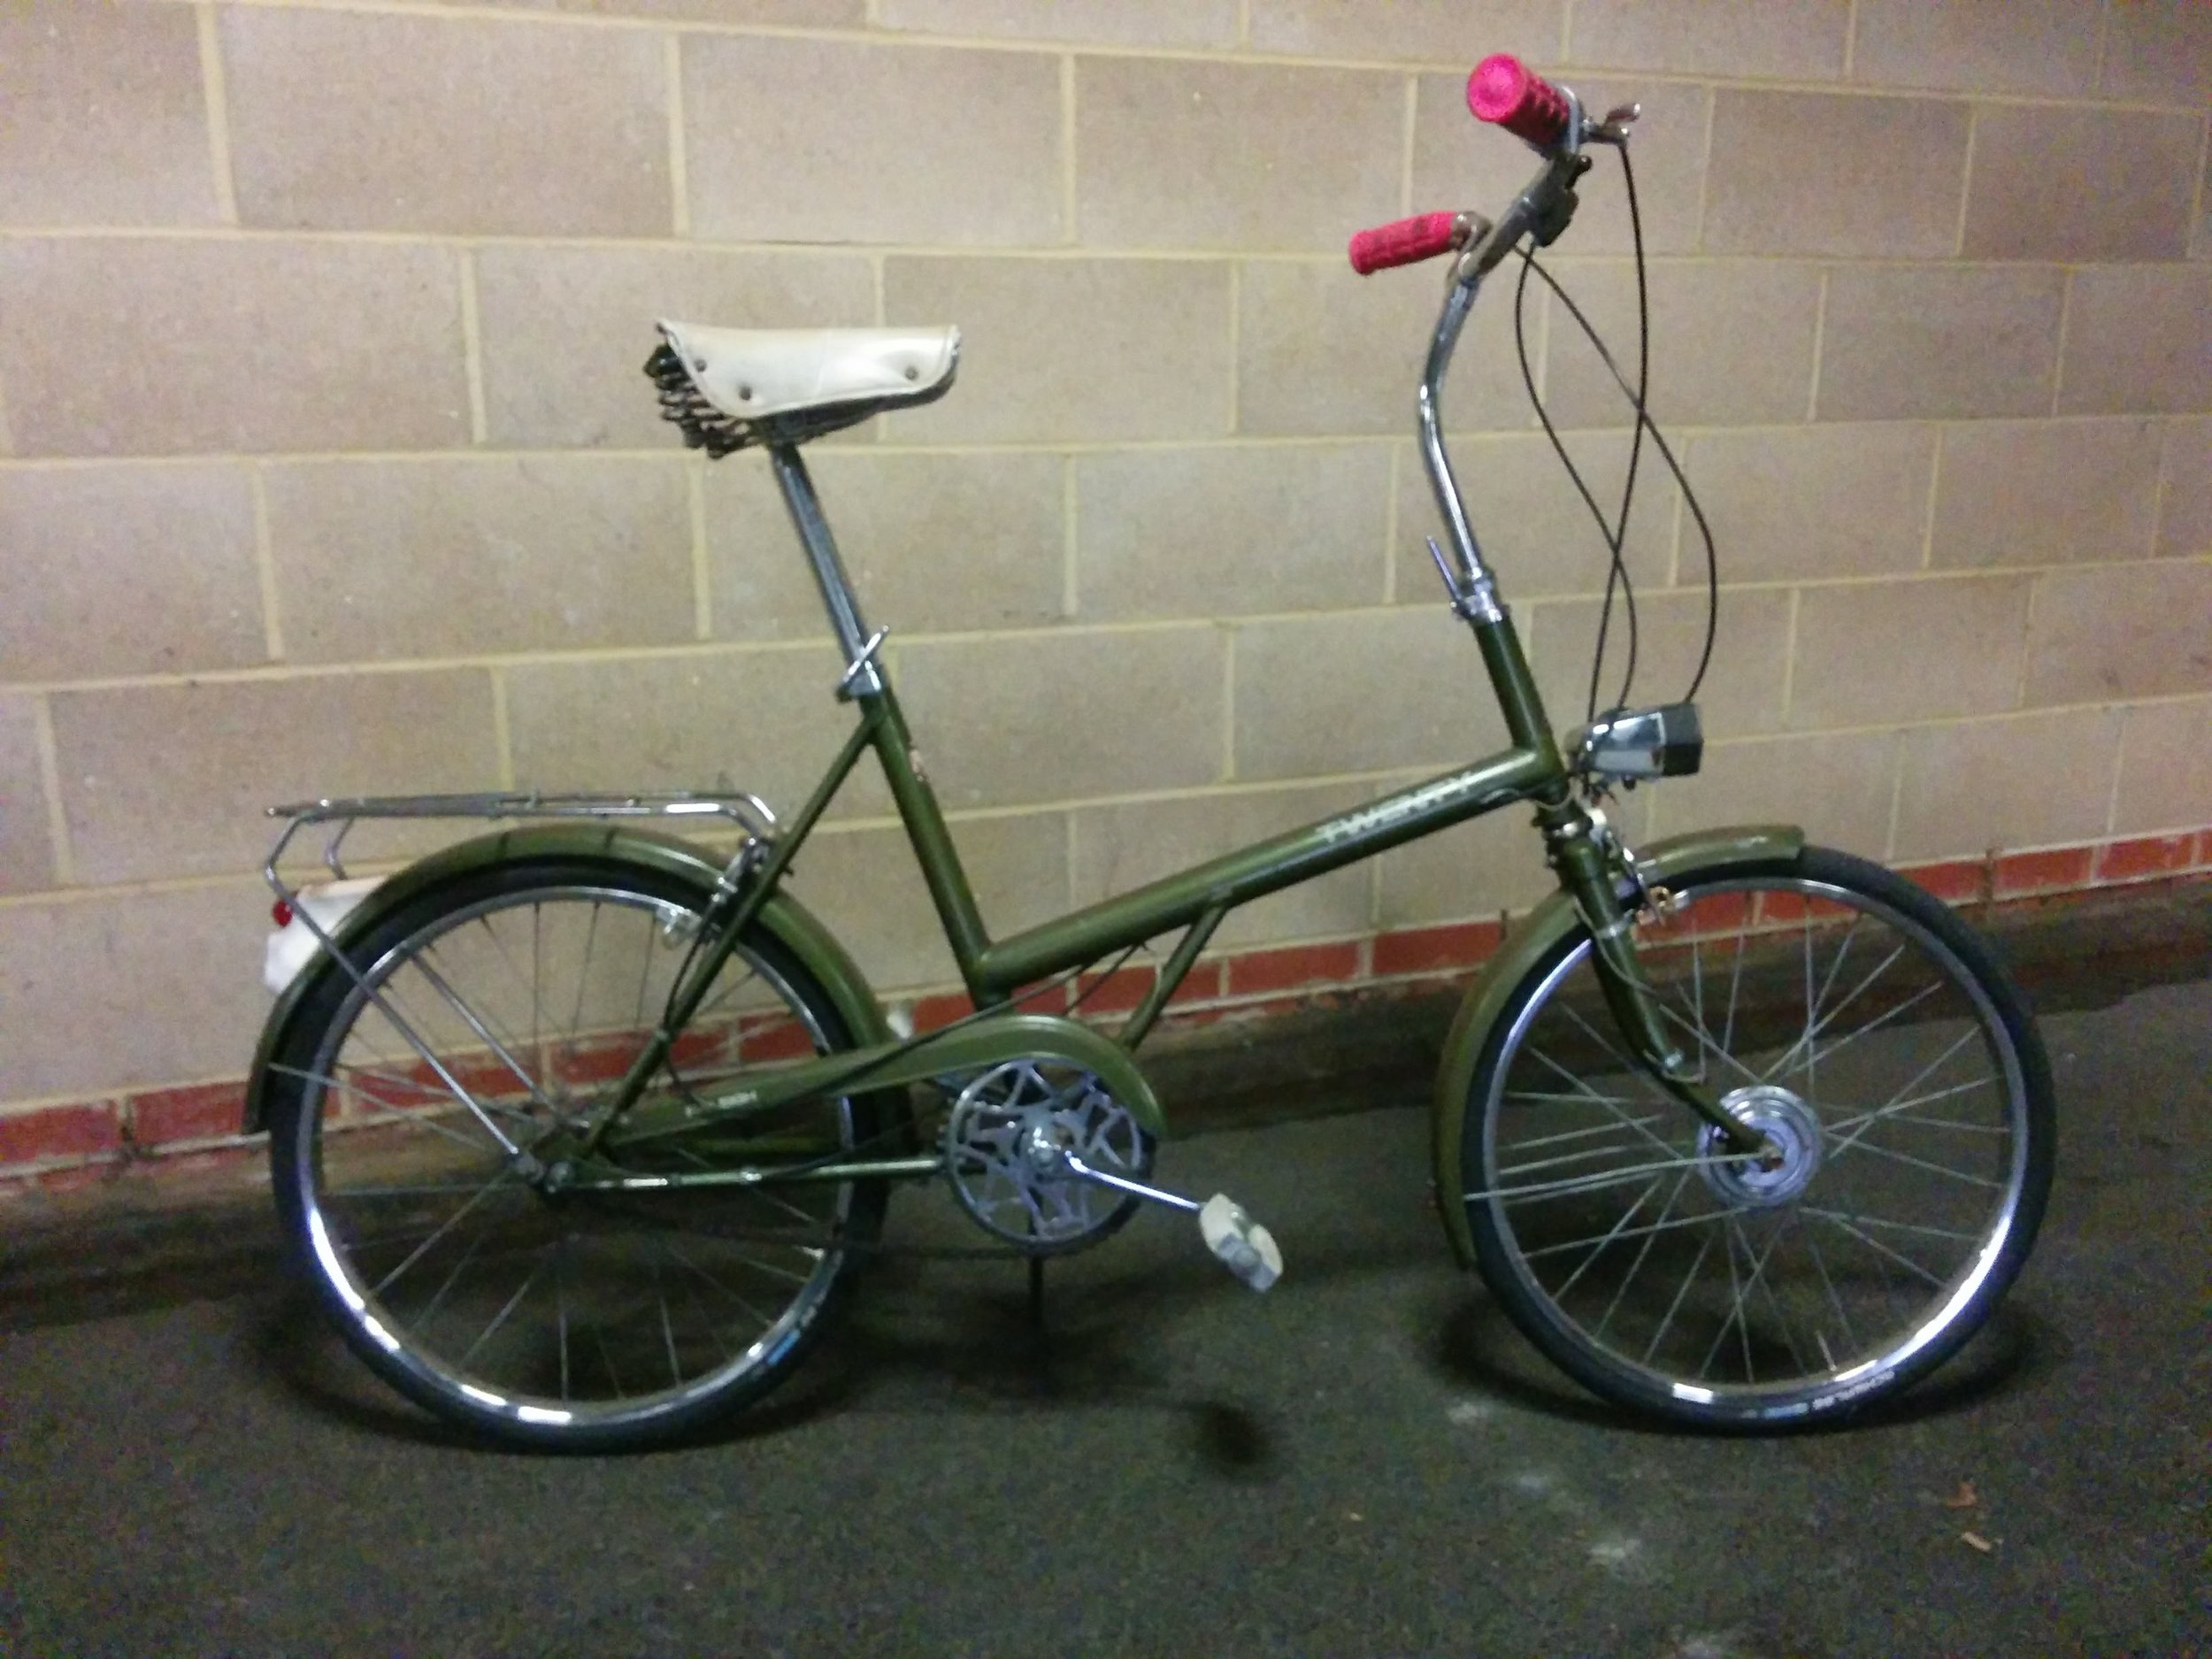 1970 Raleigh 20 - For Sale   Servicing - Clean, new cable set   August 2017